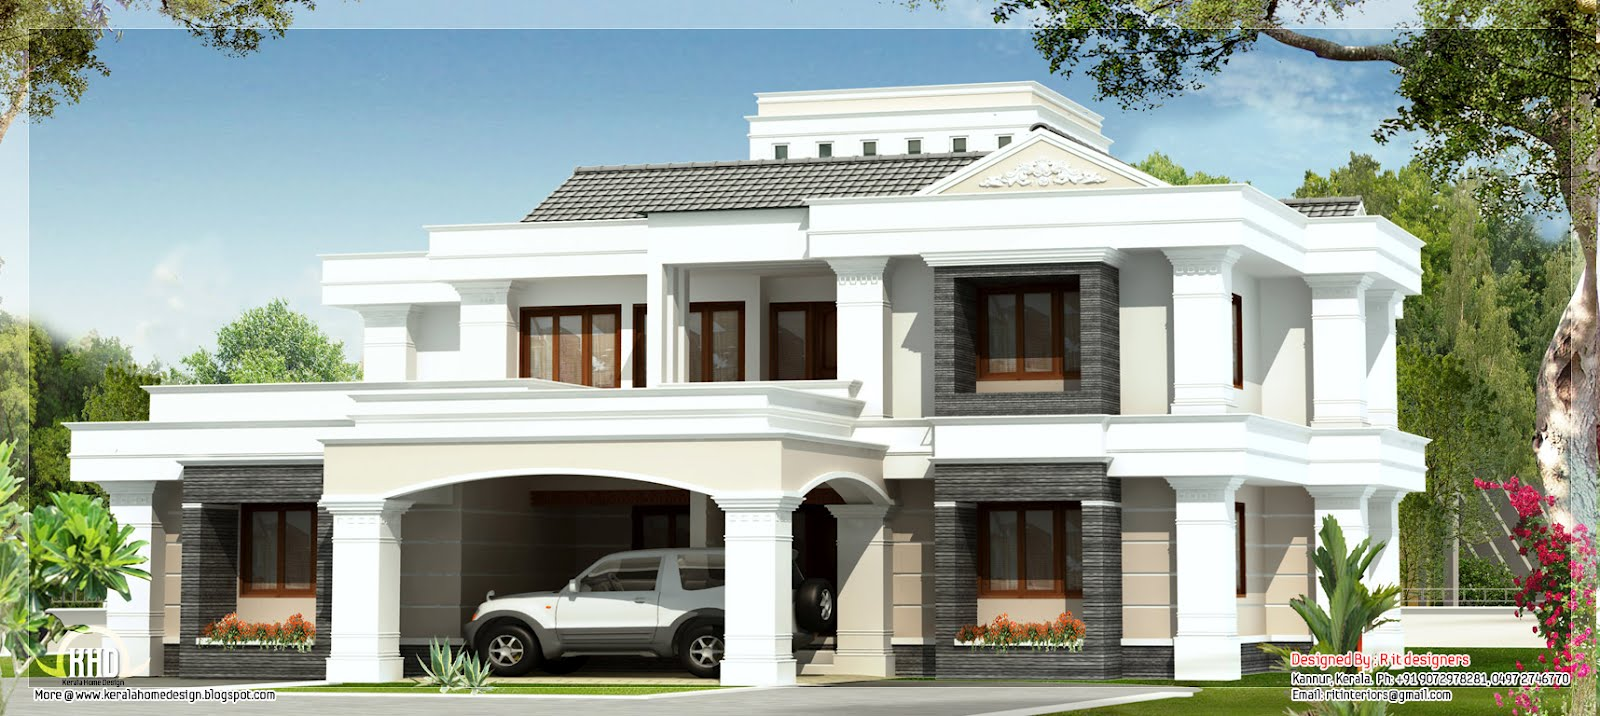 Design luxury house double floor 4 bedroom house for A four bedroom house